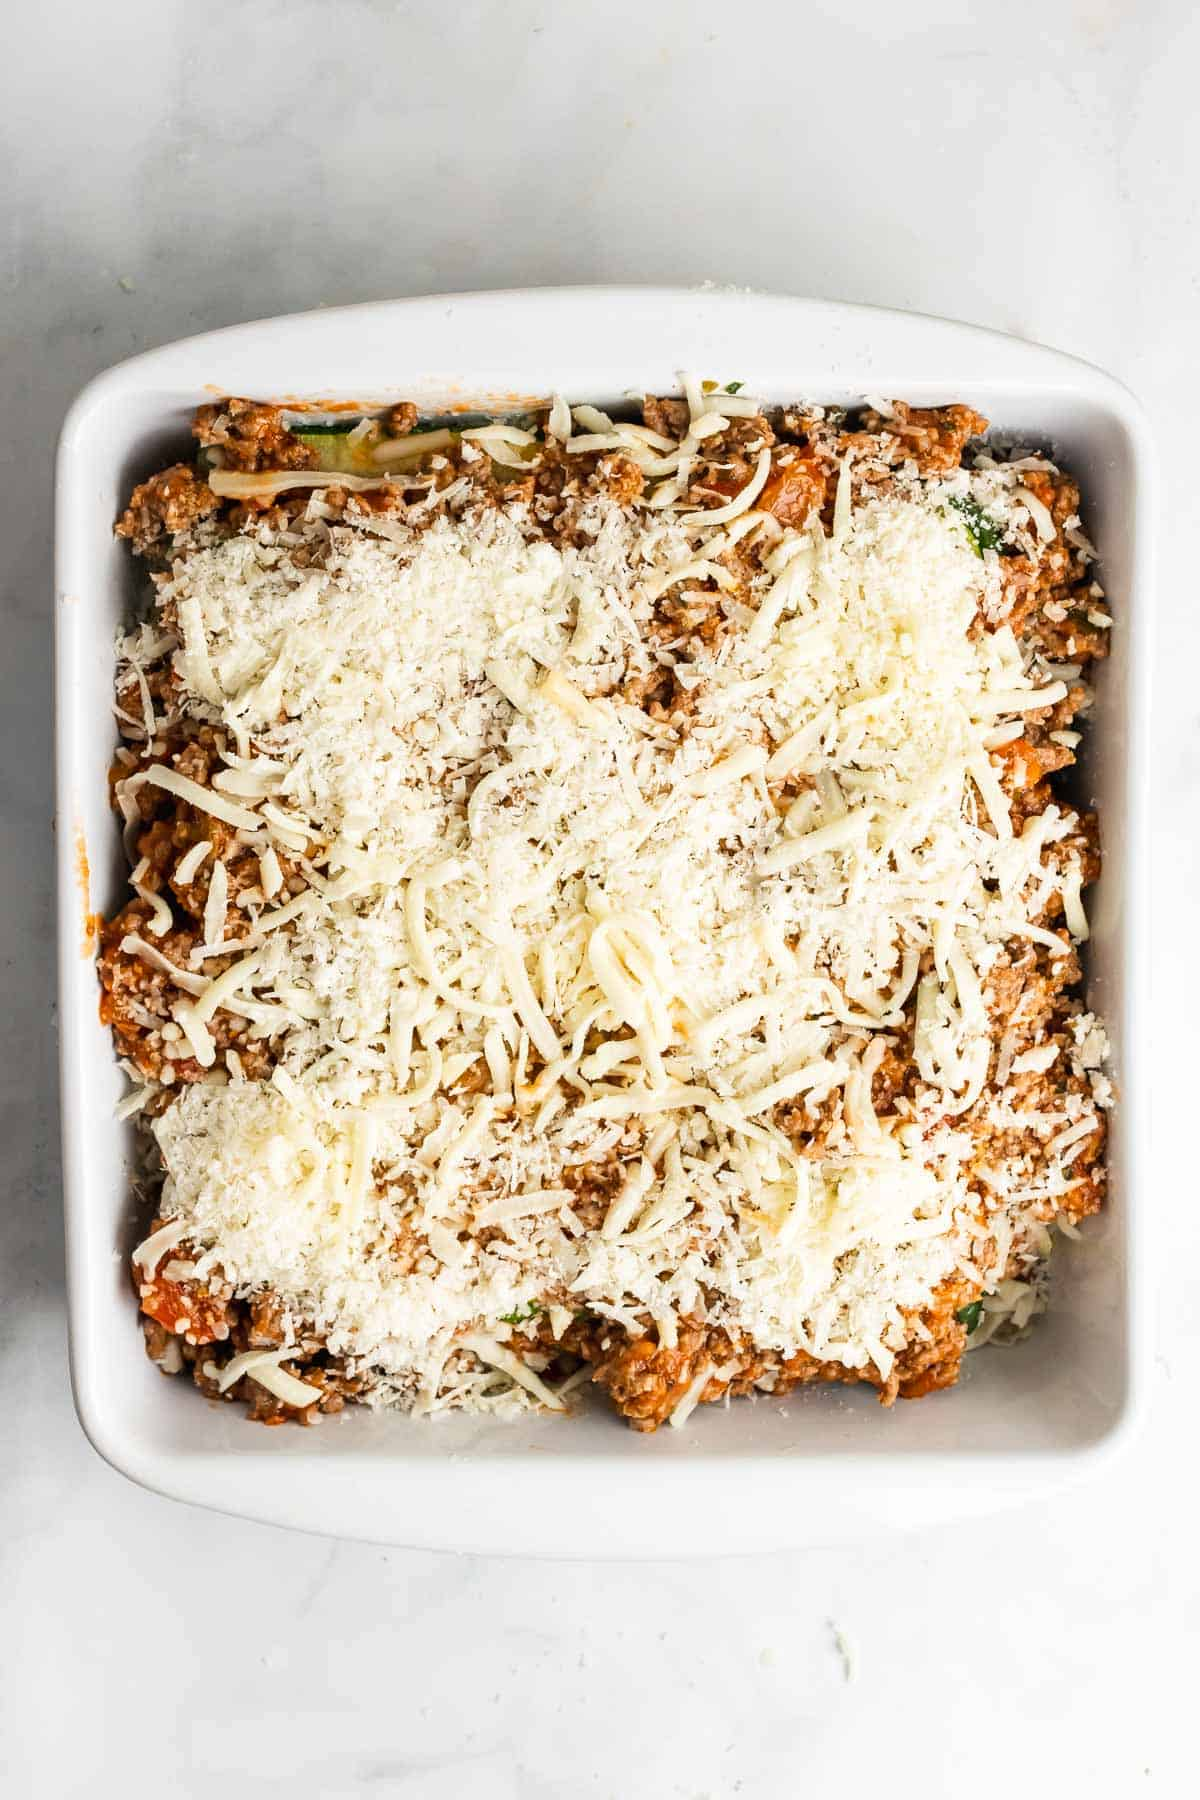 Assembled lasagna topped with Parmesan cheese, ready to go into the oven